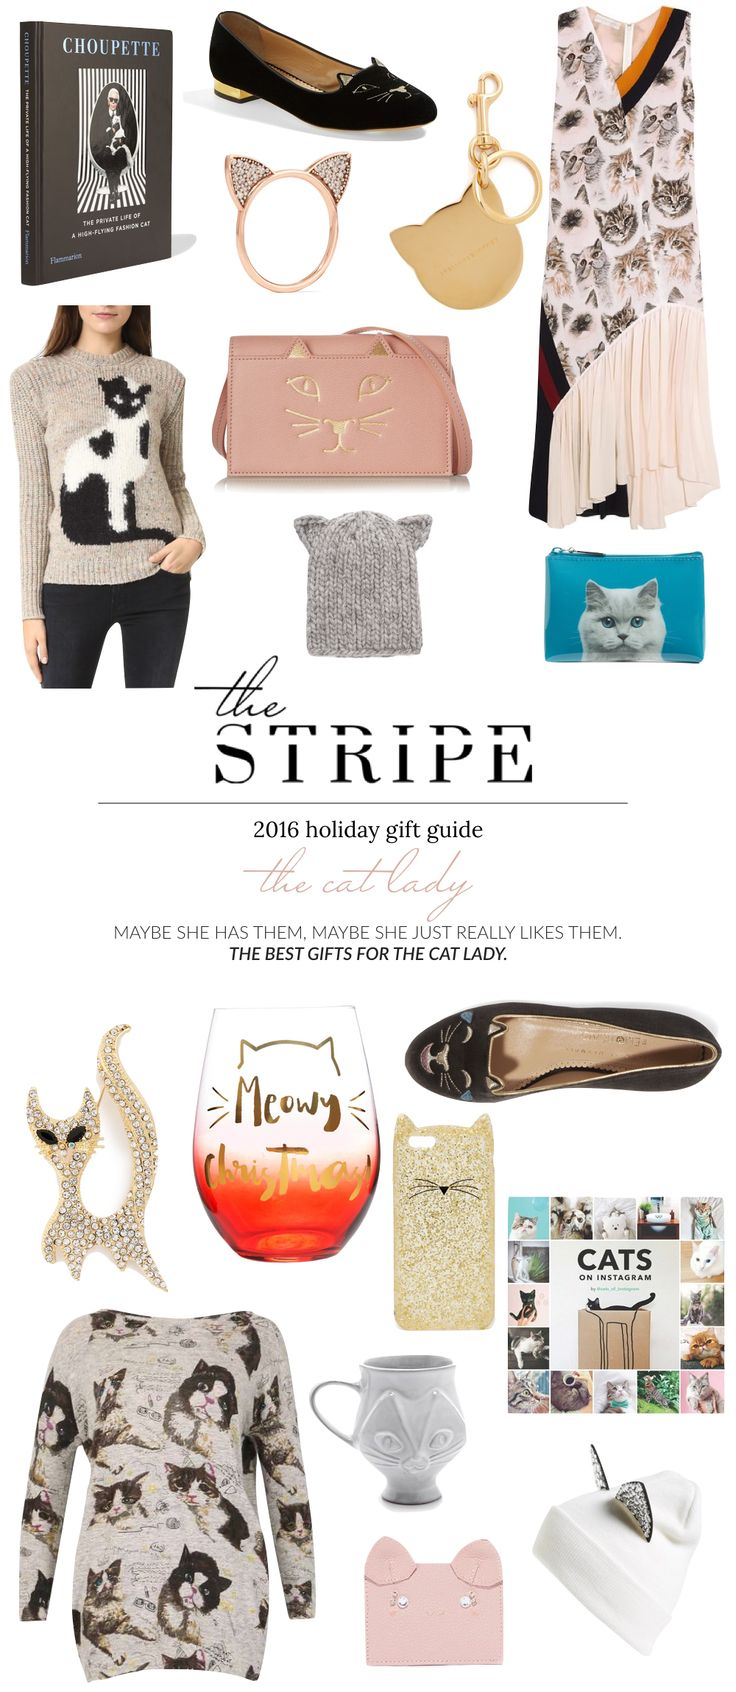 Delightful Best Ladies Gifts 2016 Part - 8: Find This Pin And More On U003c Holiday 2016: The Best Gifts U003e By Thestripeny.